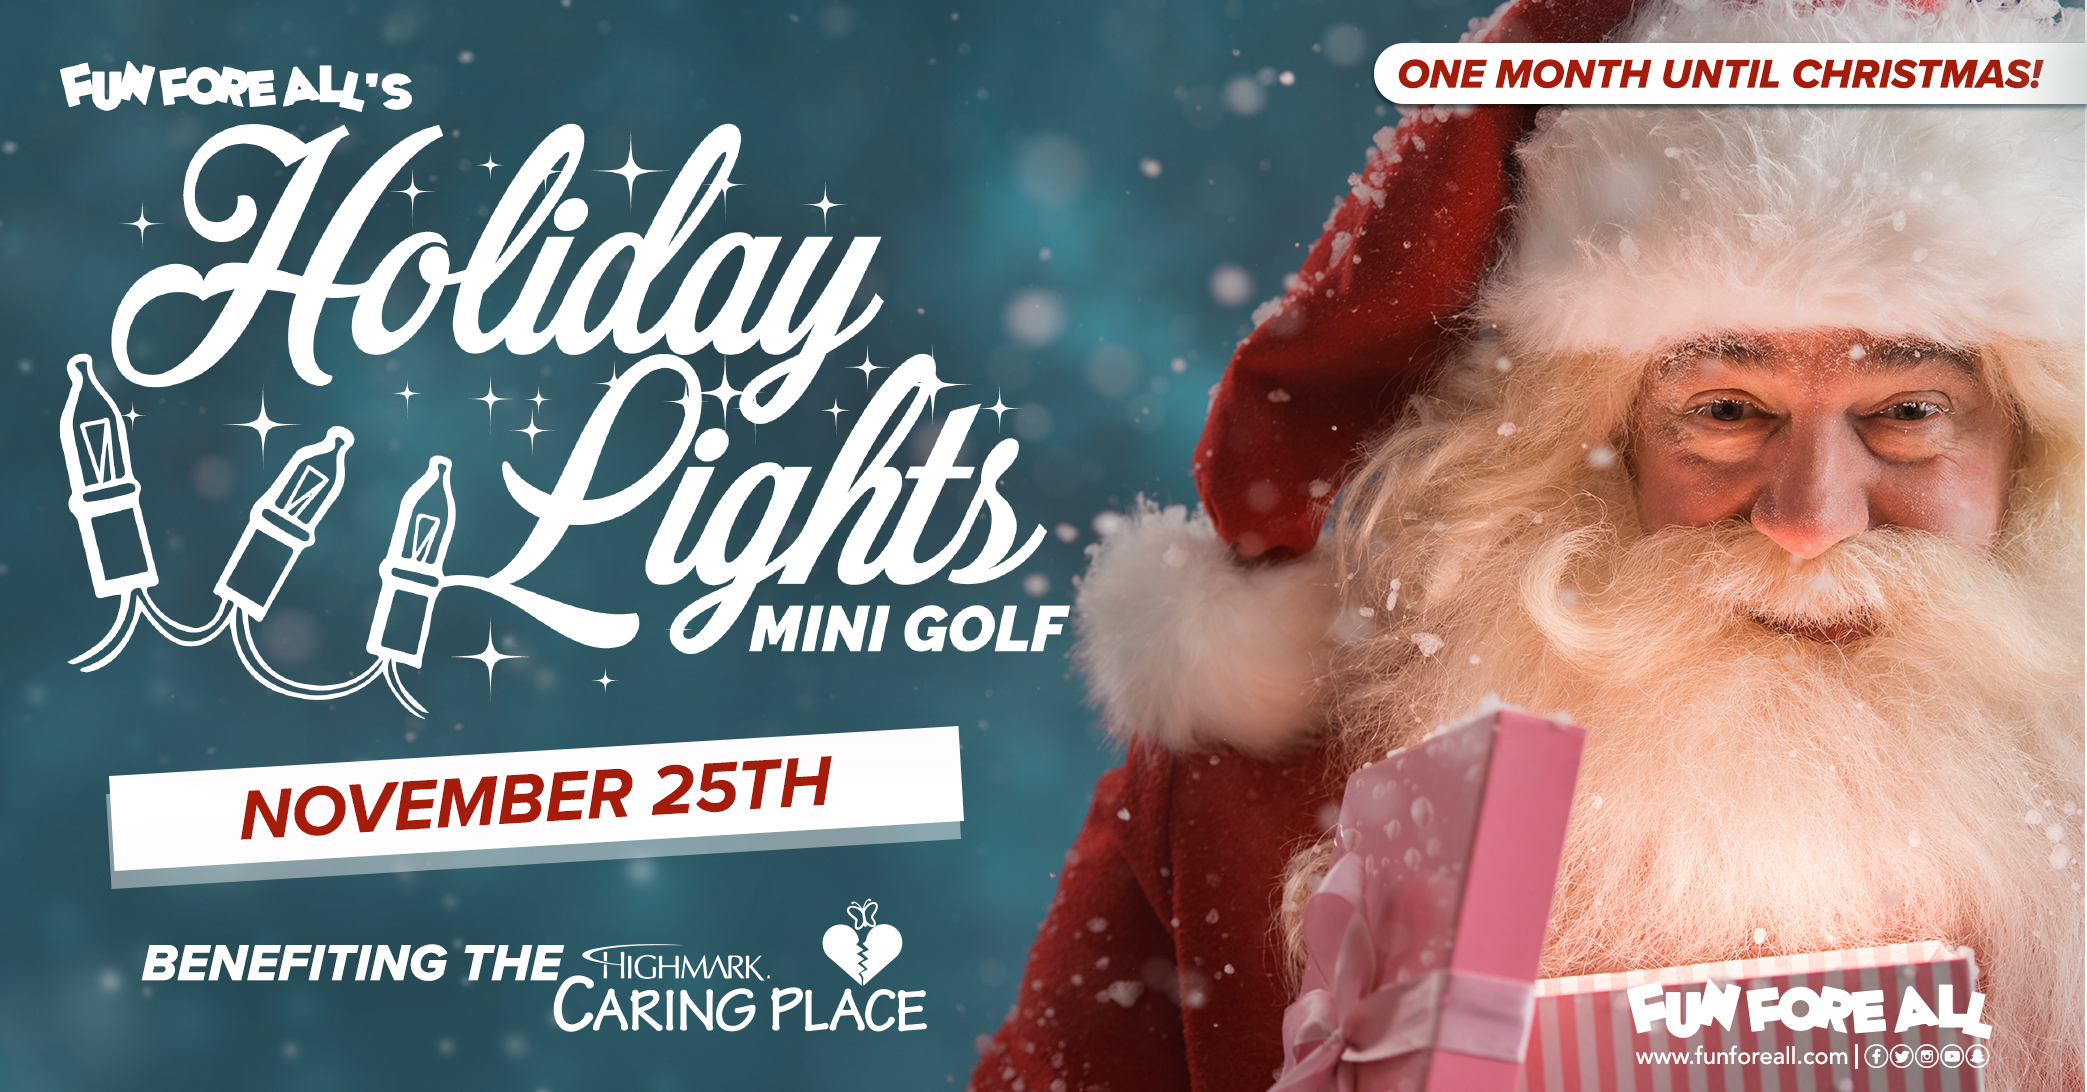 Facebook Invite (Holiday Lights - One Month Until Christmas).jpg